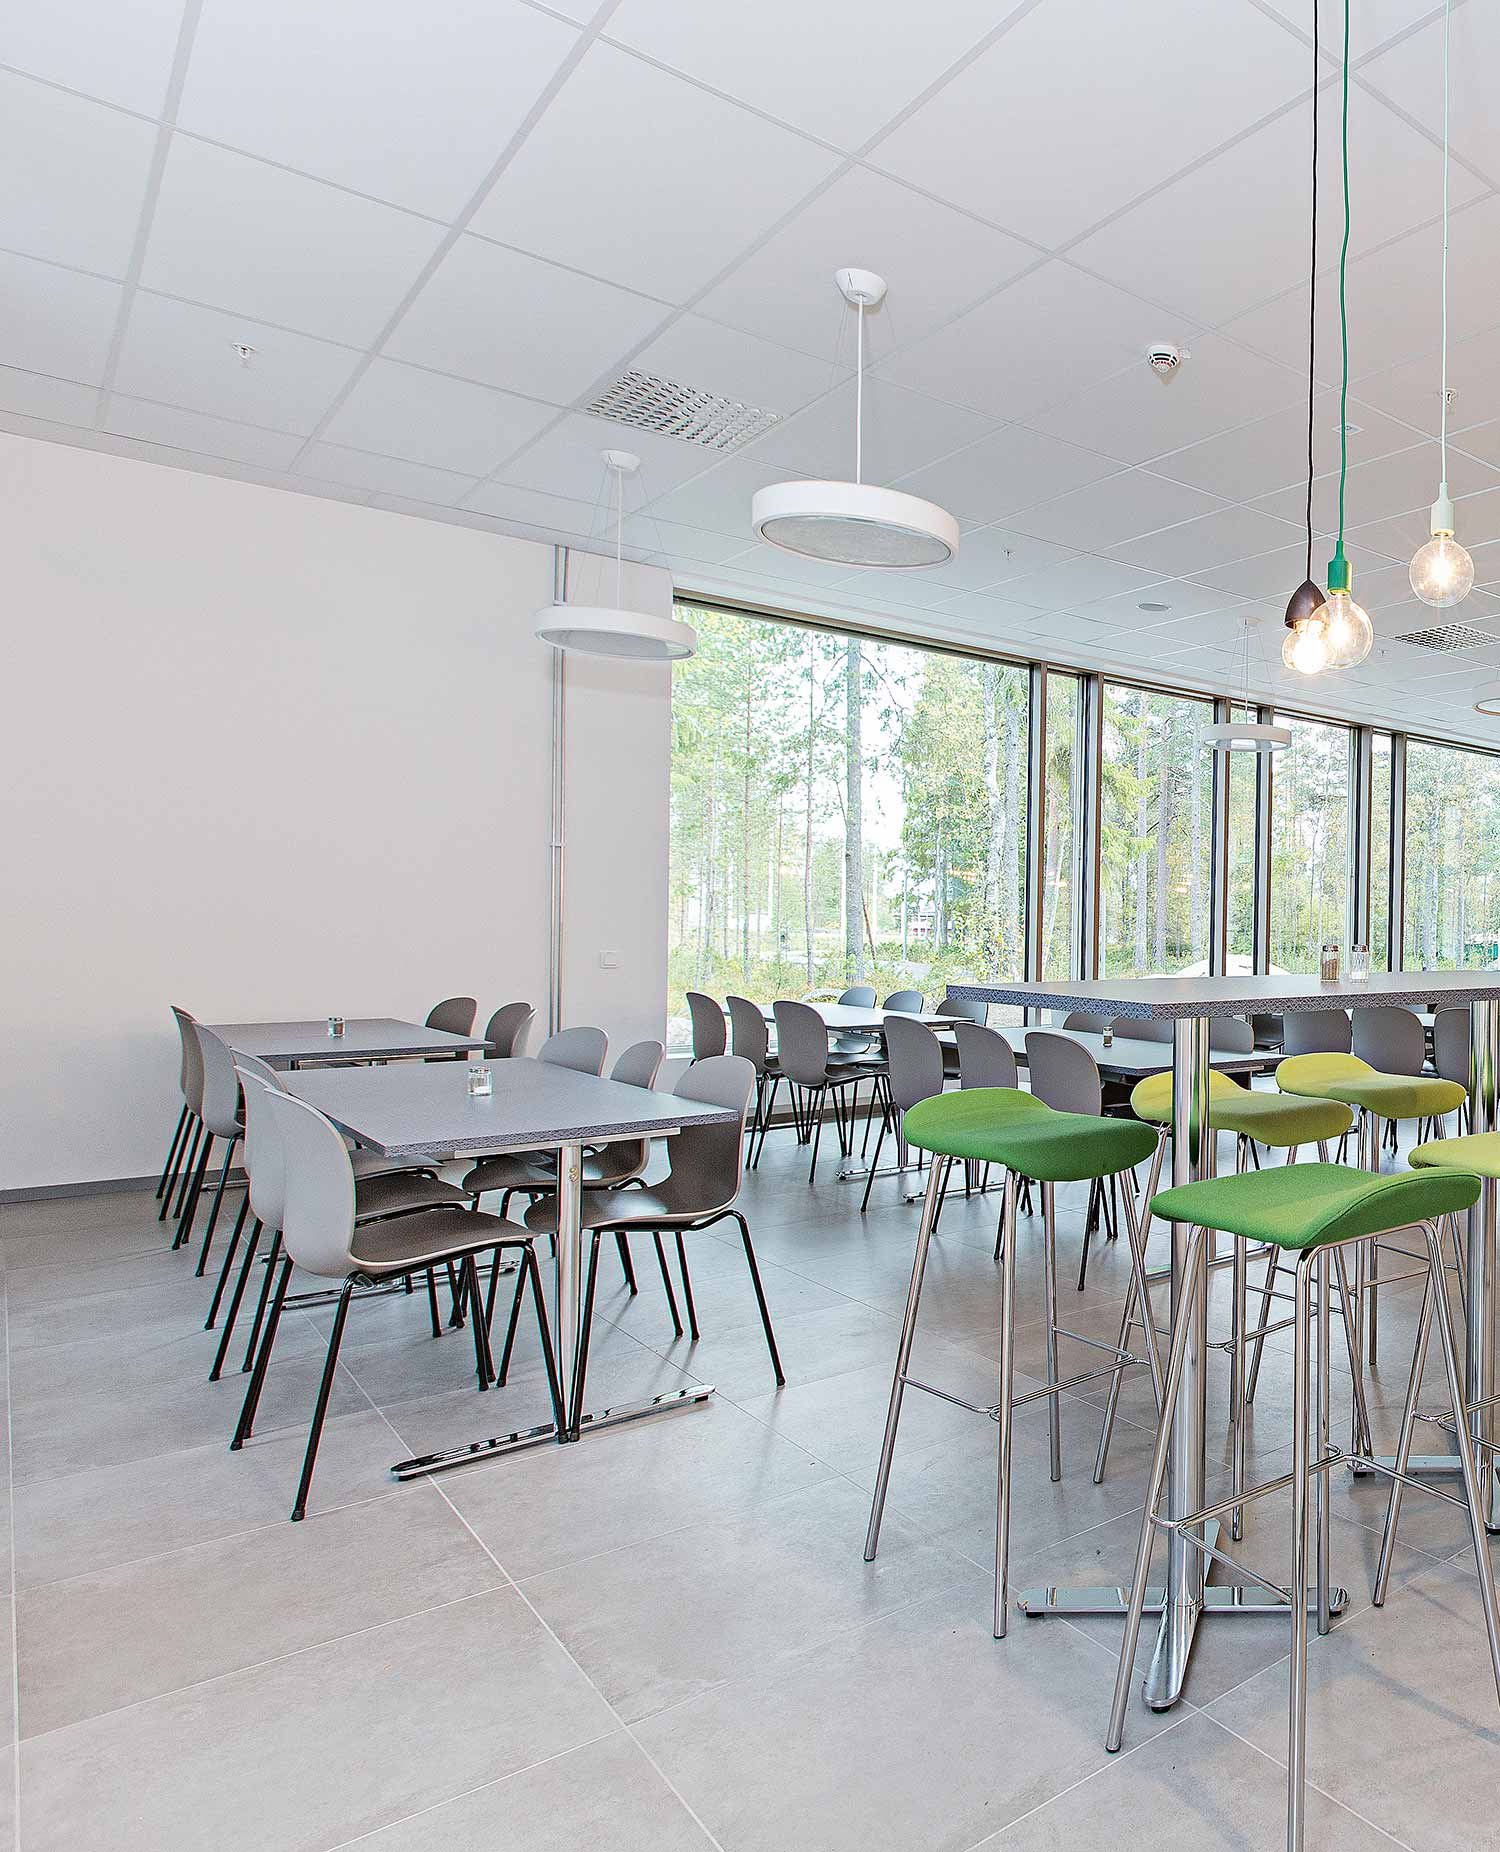 Light grey RBM Noor chairs in Minerva High School social area for eating